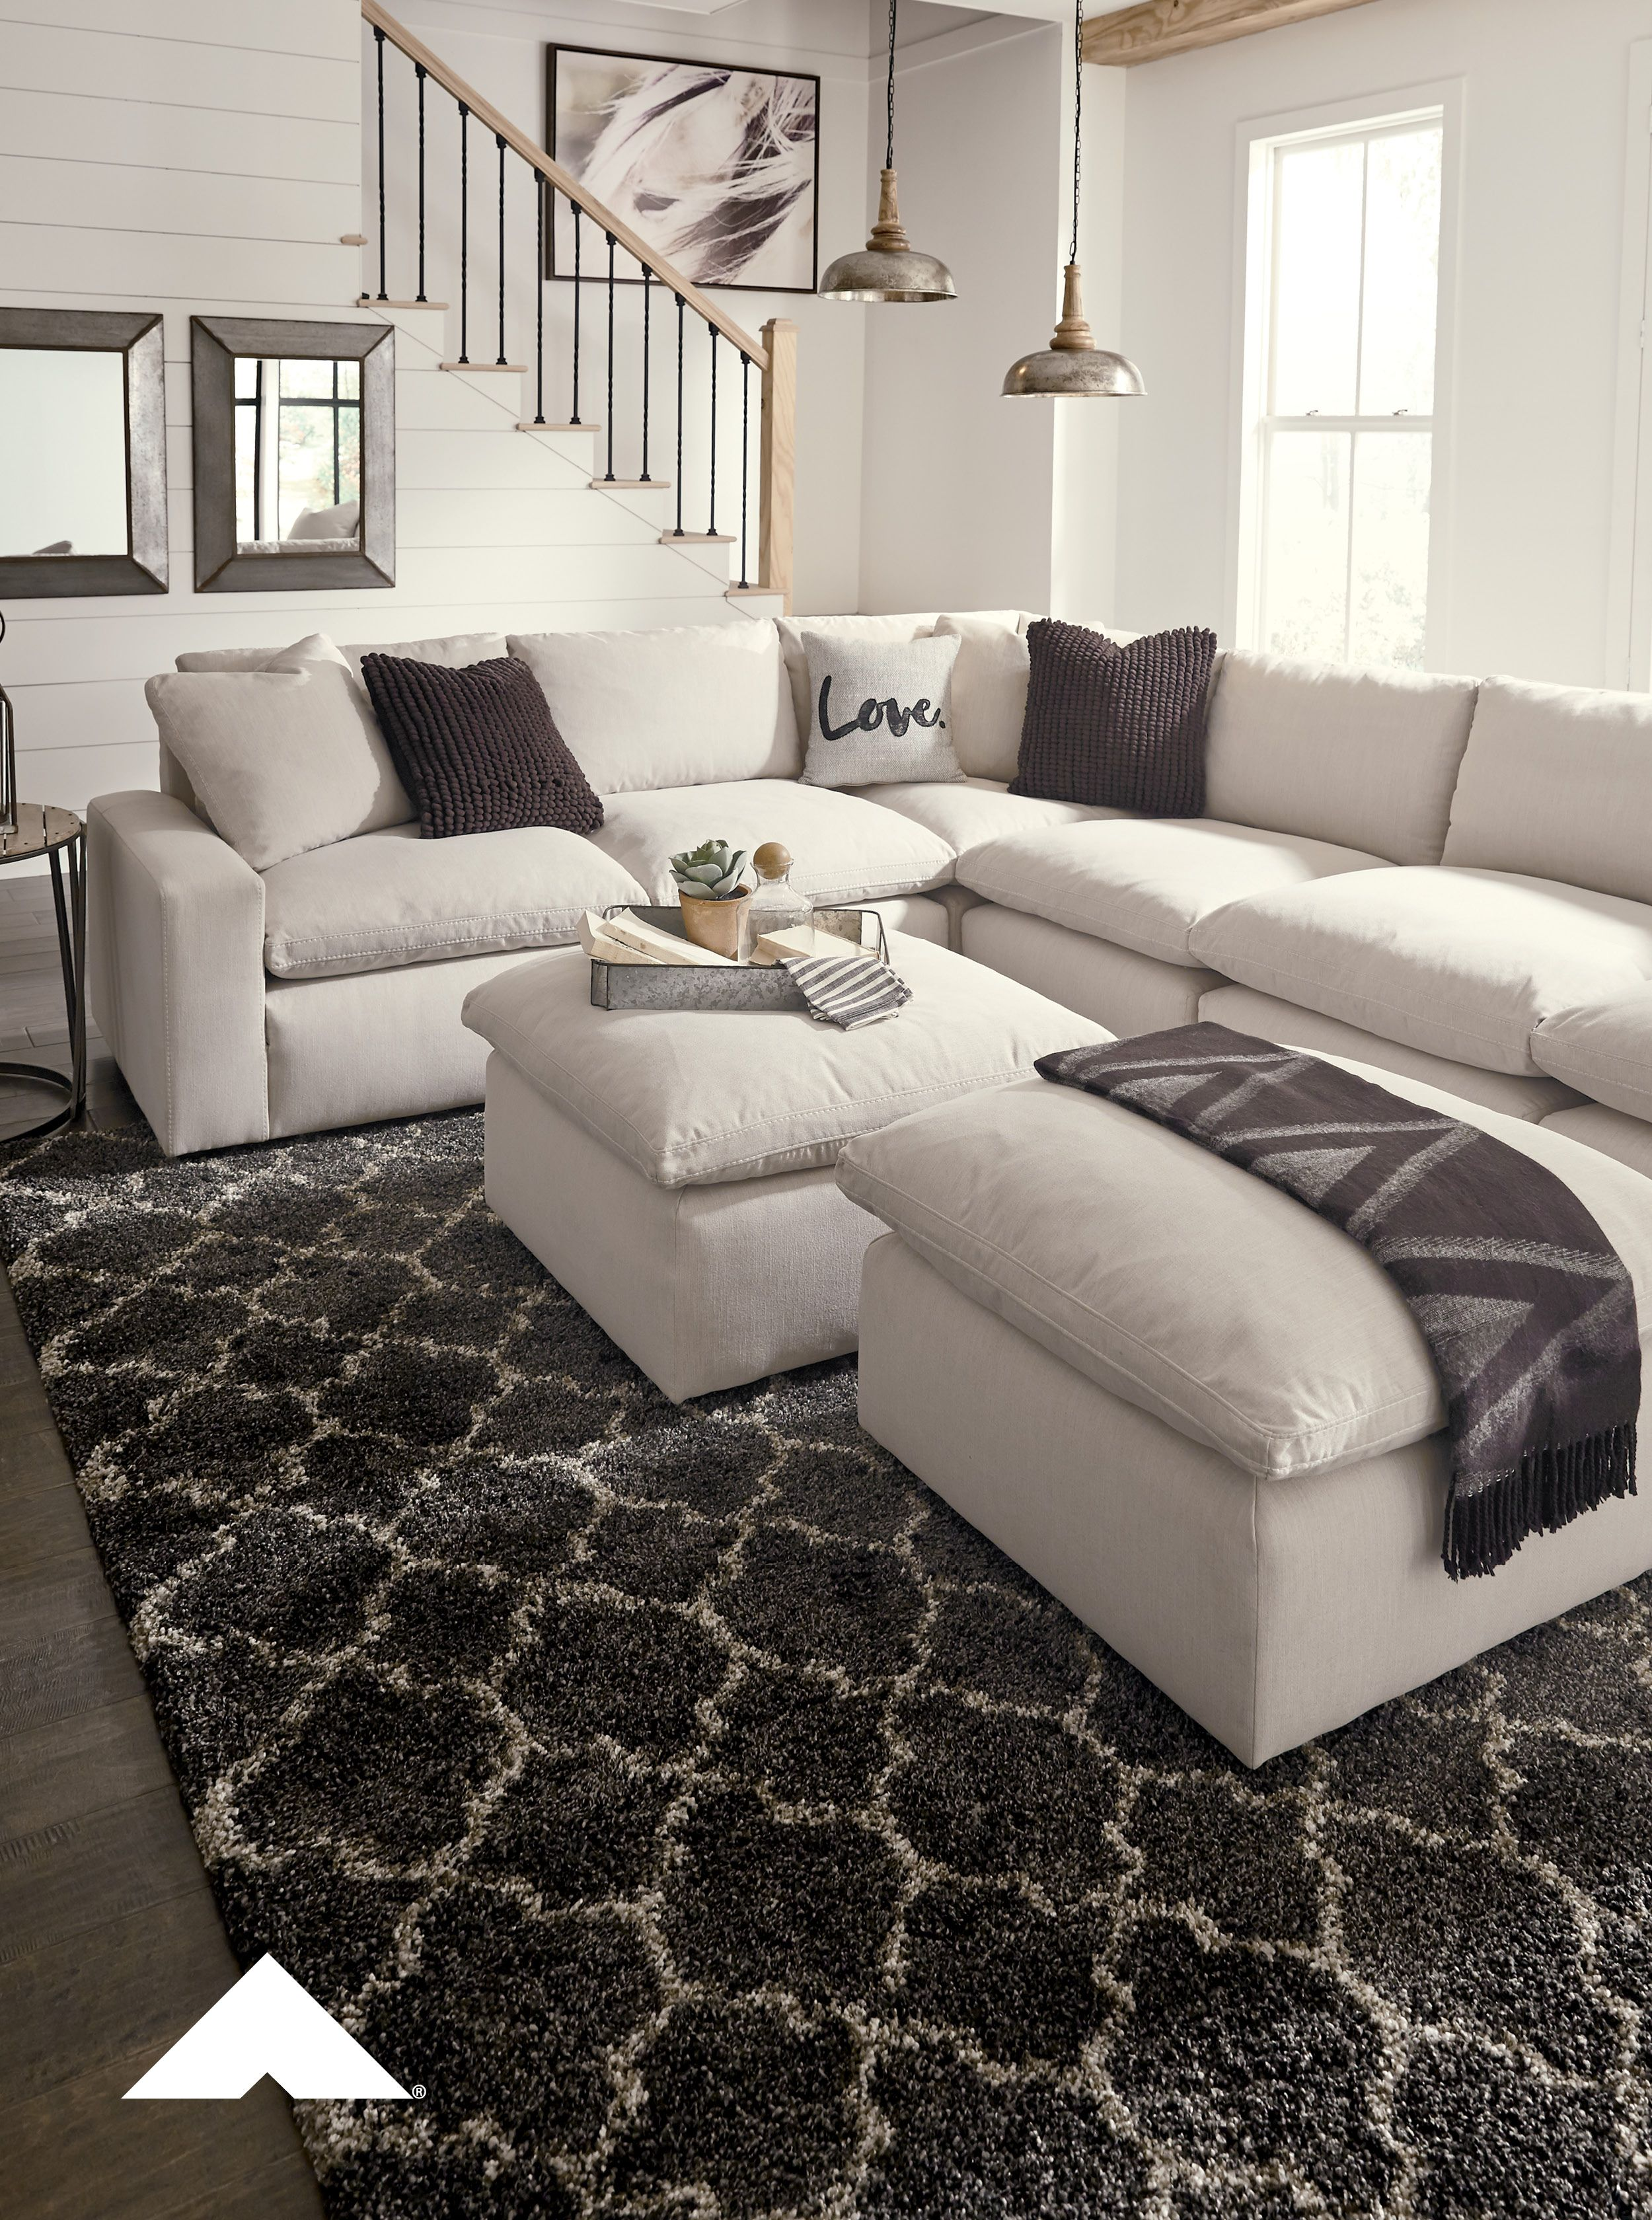 Savesto Living Room Group By Ashley Furniture Ashleyfurniture Livingroom L Ashley Furniture Living Room Small Space Living Room Ashley Furniture Sectional